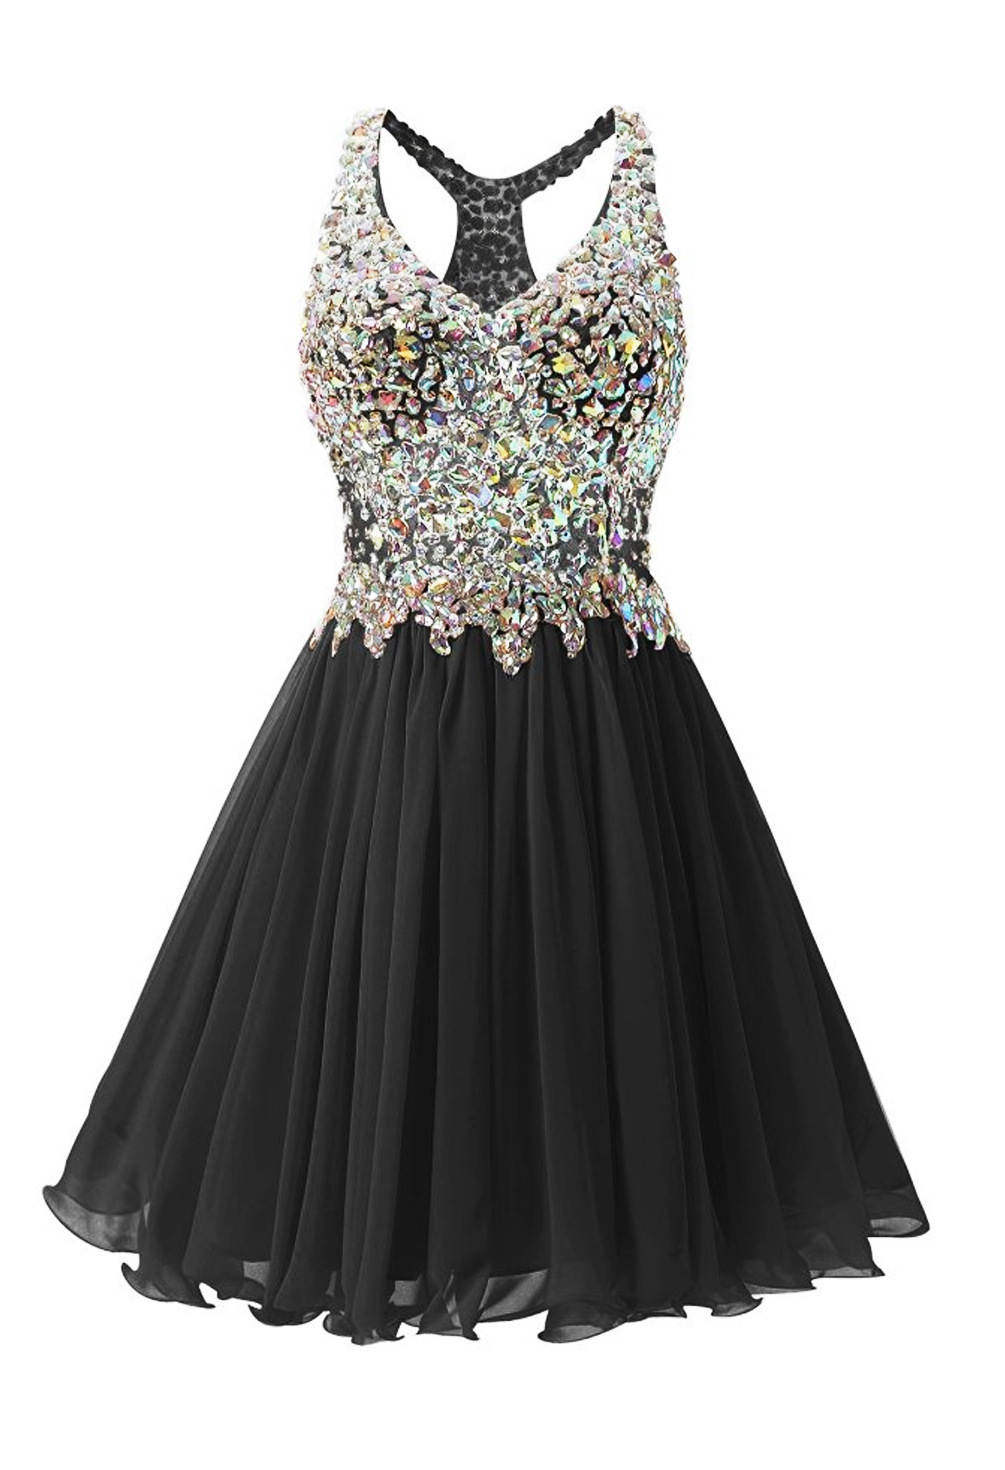 Women's Beading A Line Homecoming Dress Chiffon V-Neck Short Formal Prom Gowns